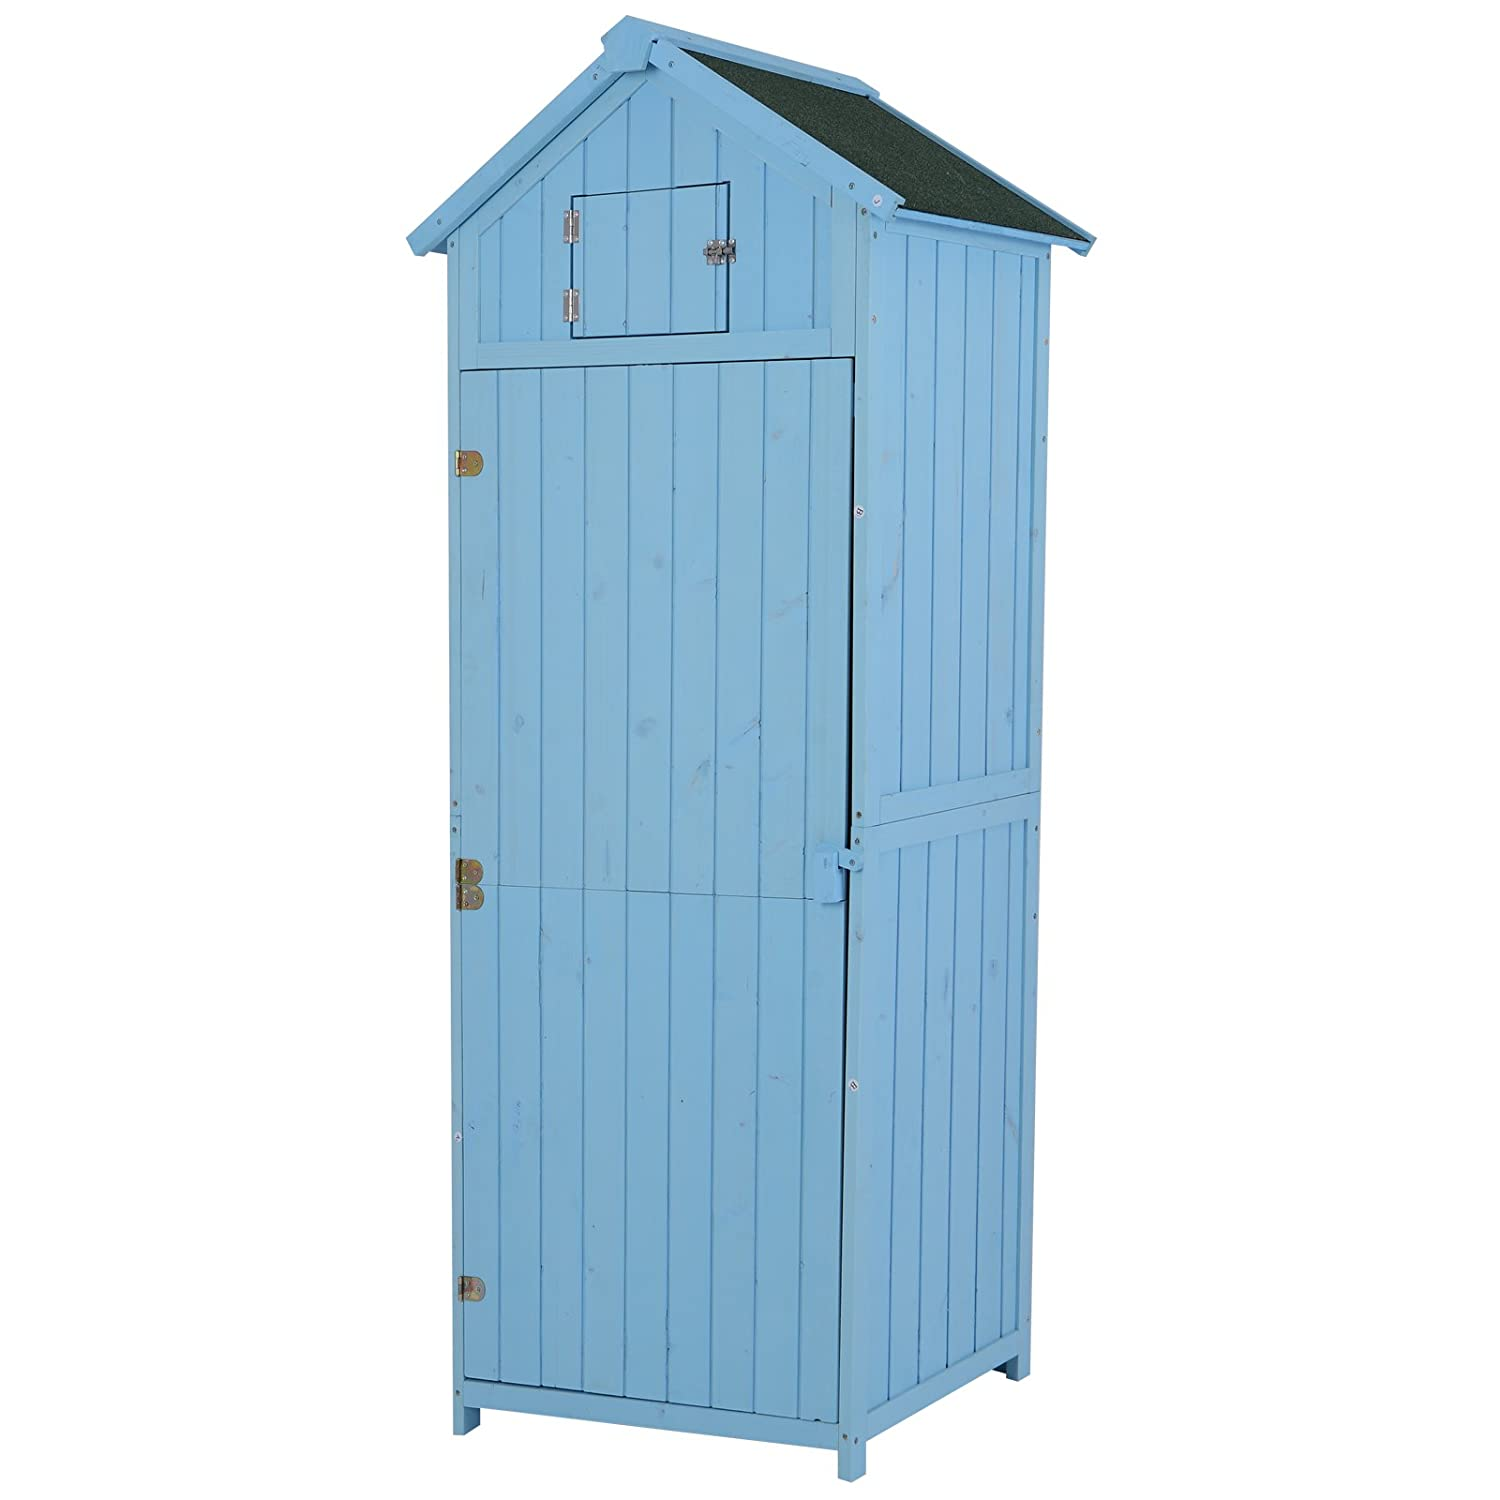 Outsunny Vertical Utility 3 Shelves Shed Wood Outdoor Garden Tool Storage Unit Storage Cabinet with Window77 x 54.2 x 179cm - Blue Sold by MHSTAR UK845-209BU0331